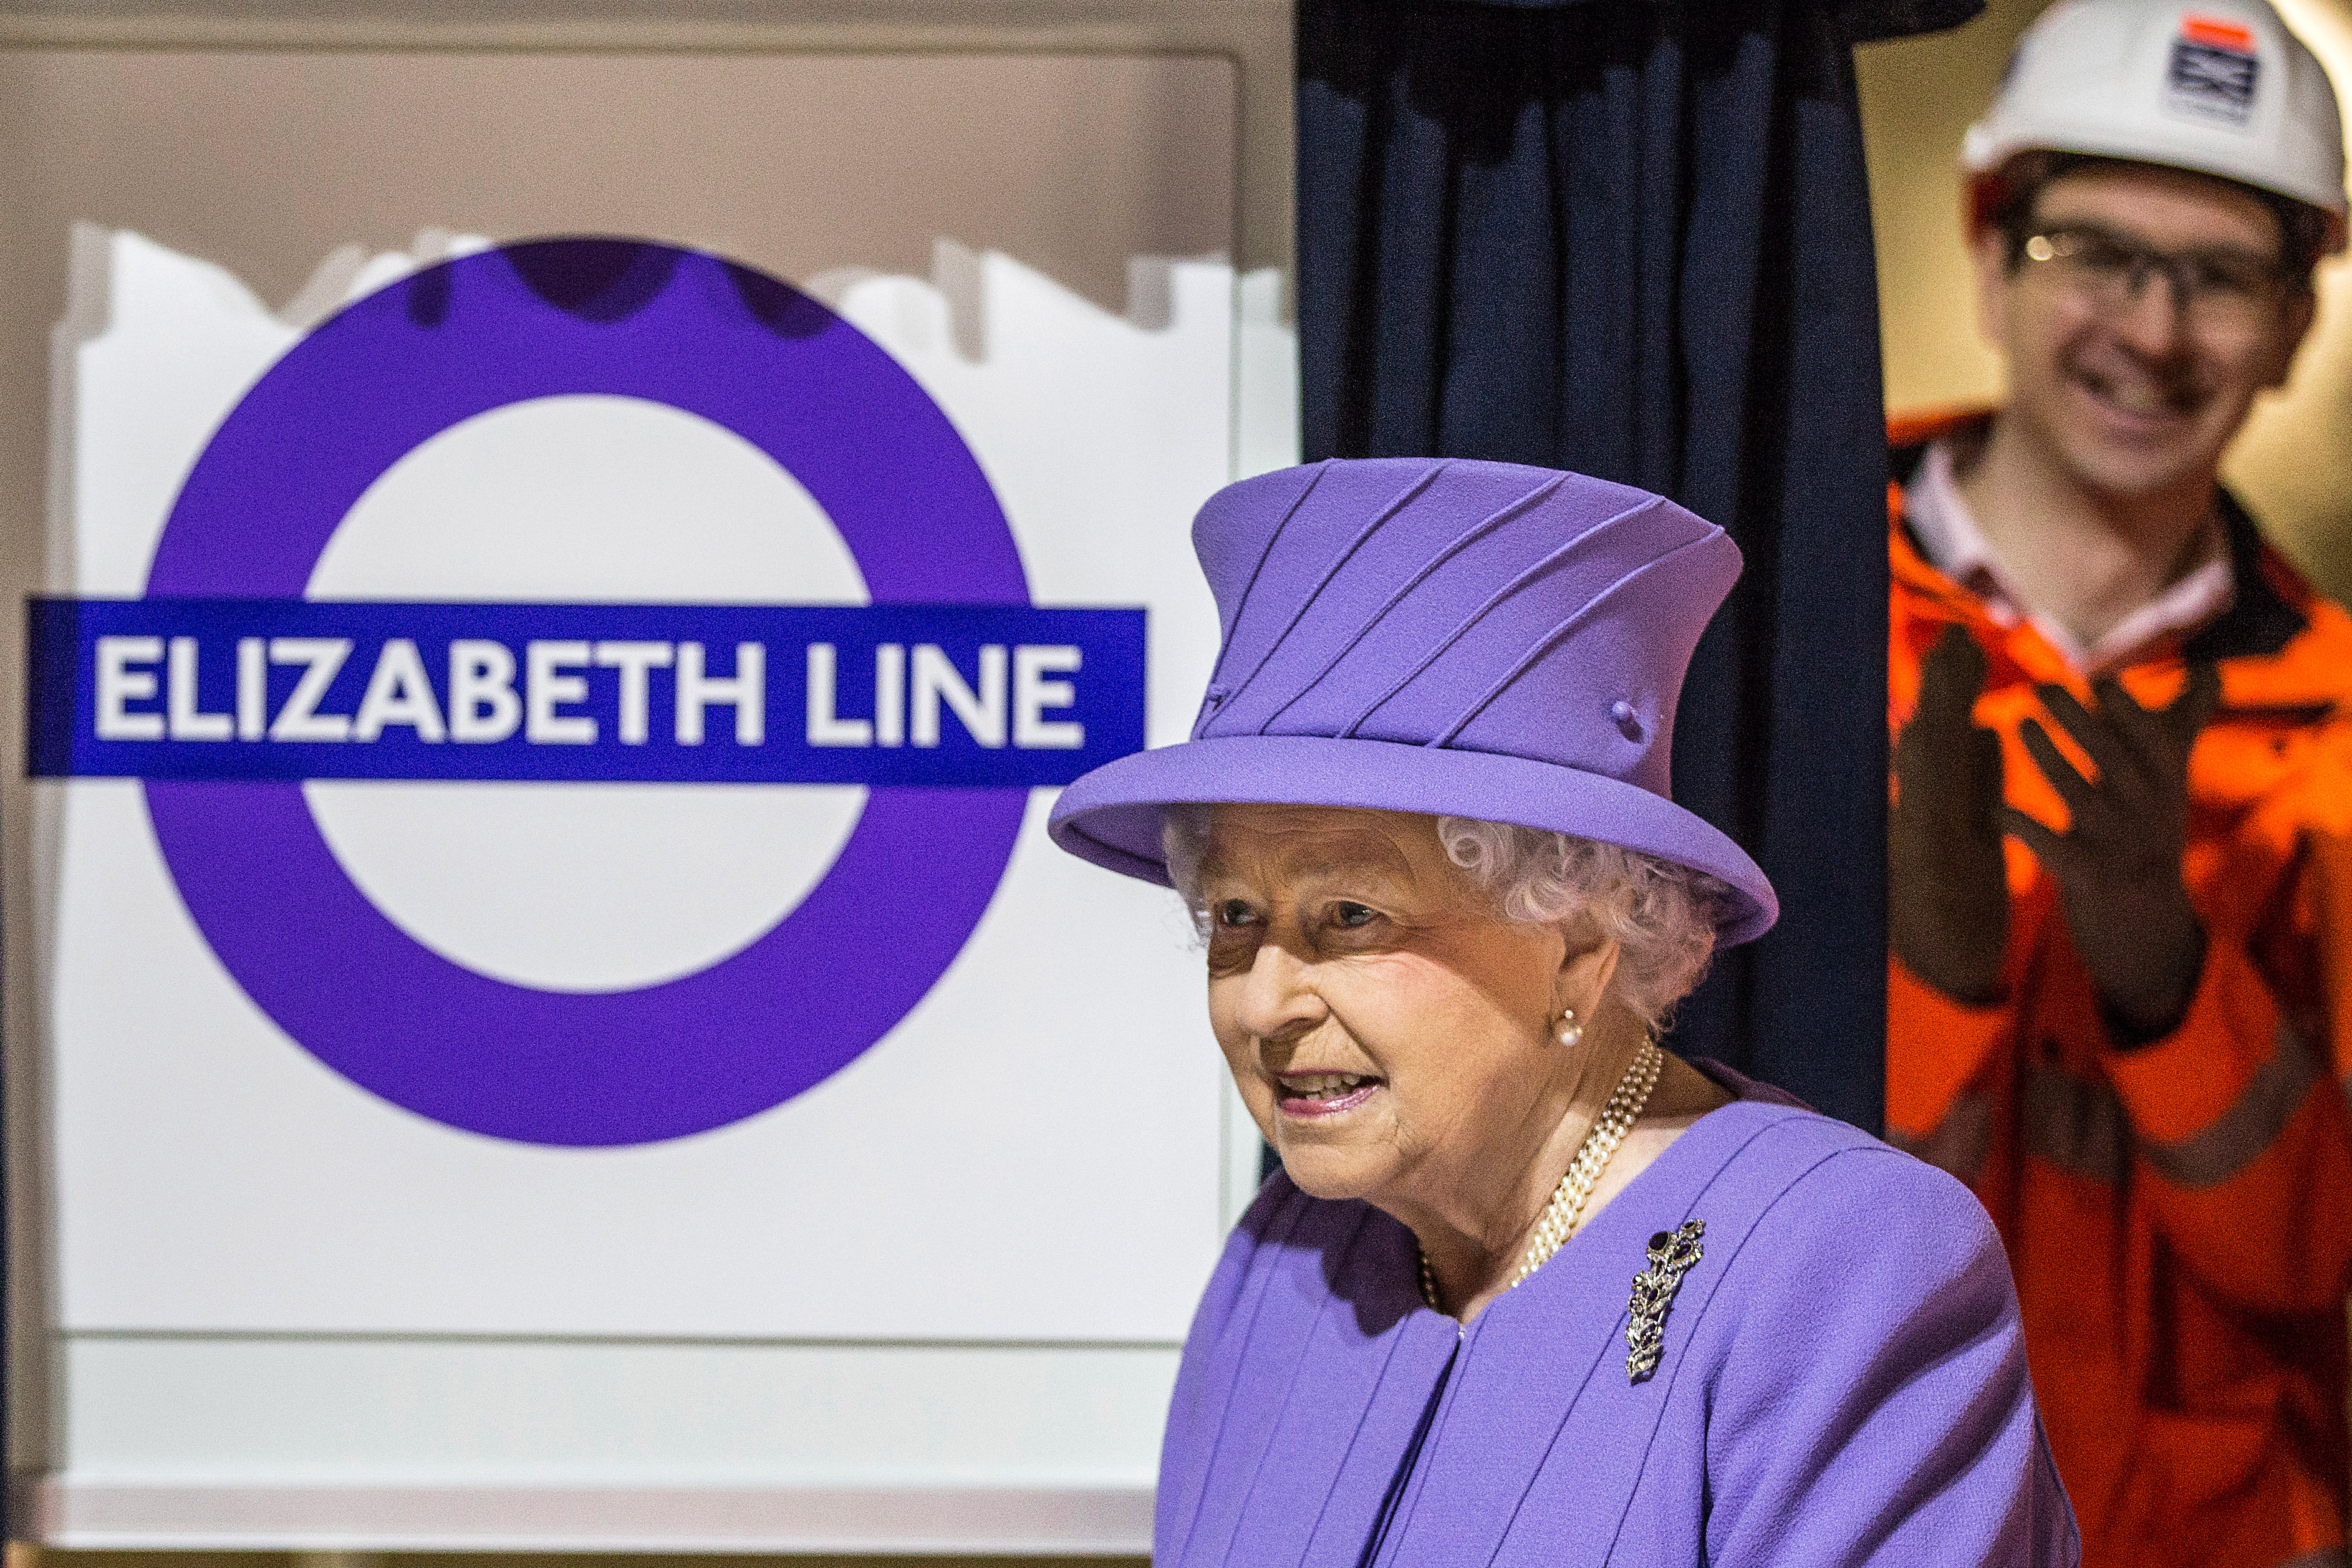 On February 23, 2016, Britain's Queen Elizabeth II visited the site of the new Crossrail Bond street station in central London, which is still under construction.